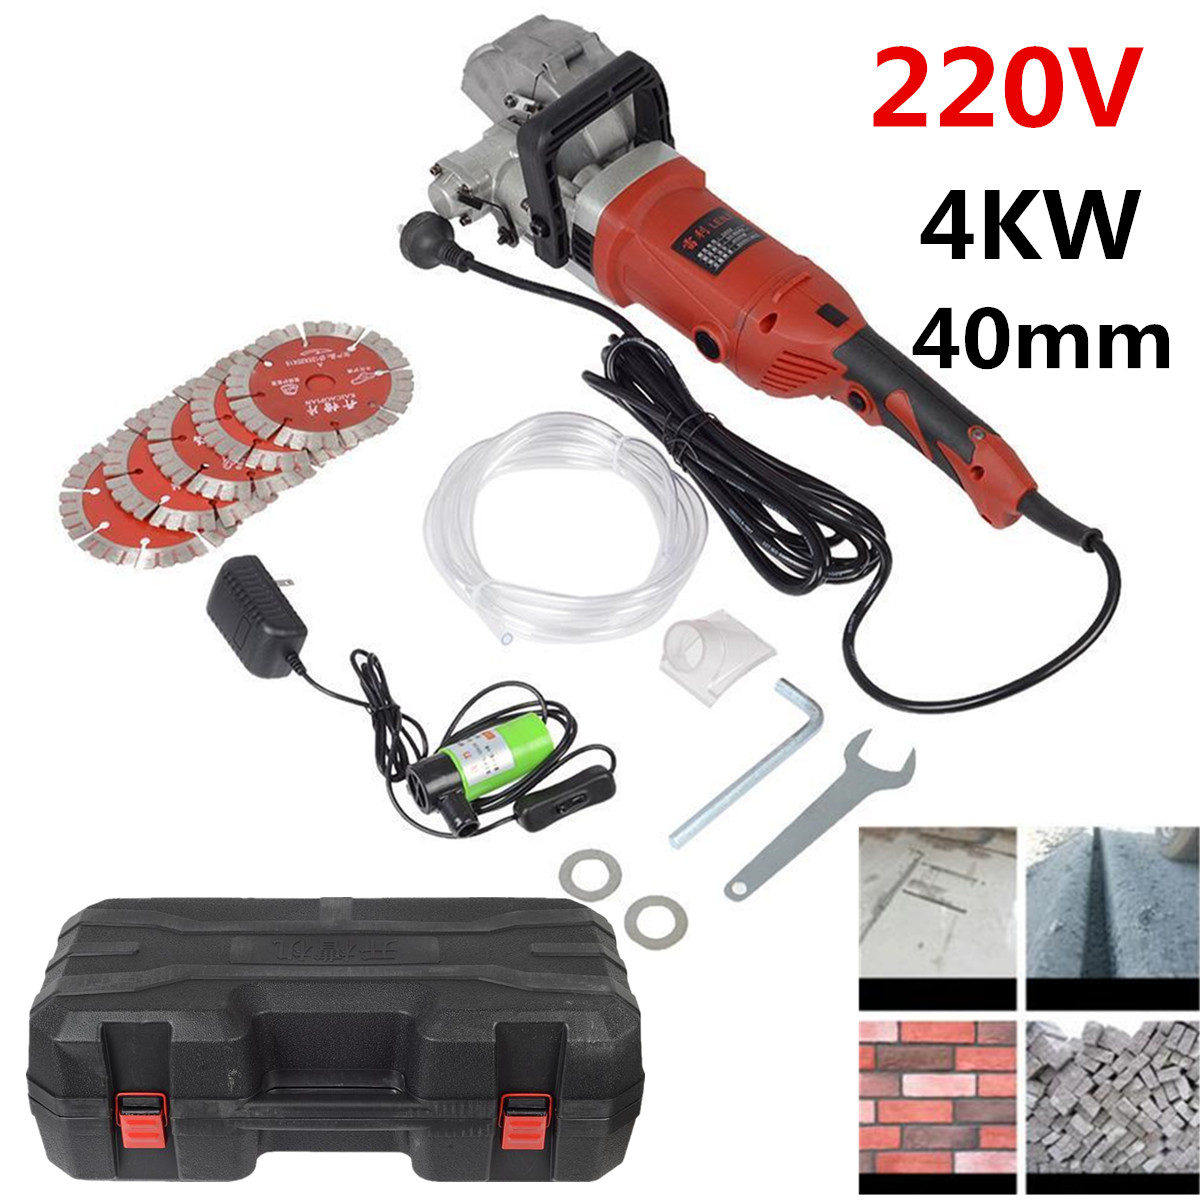 220V Electric Wall Chaser~ Groove Cutting Machine Wall slotting machine Steel Concrete cutting machine 4KW 40mm